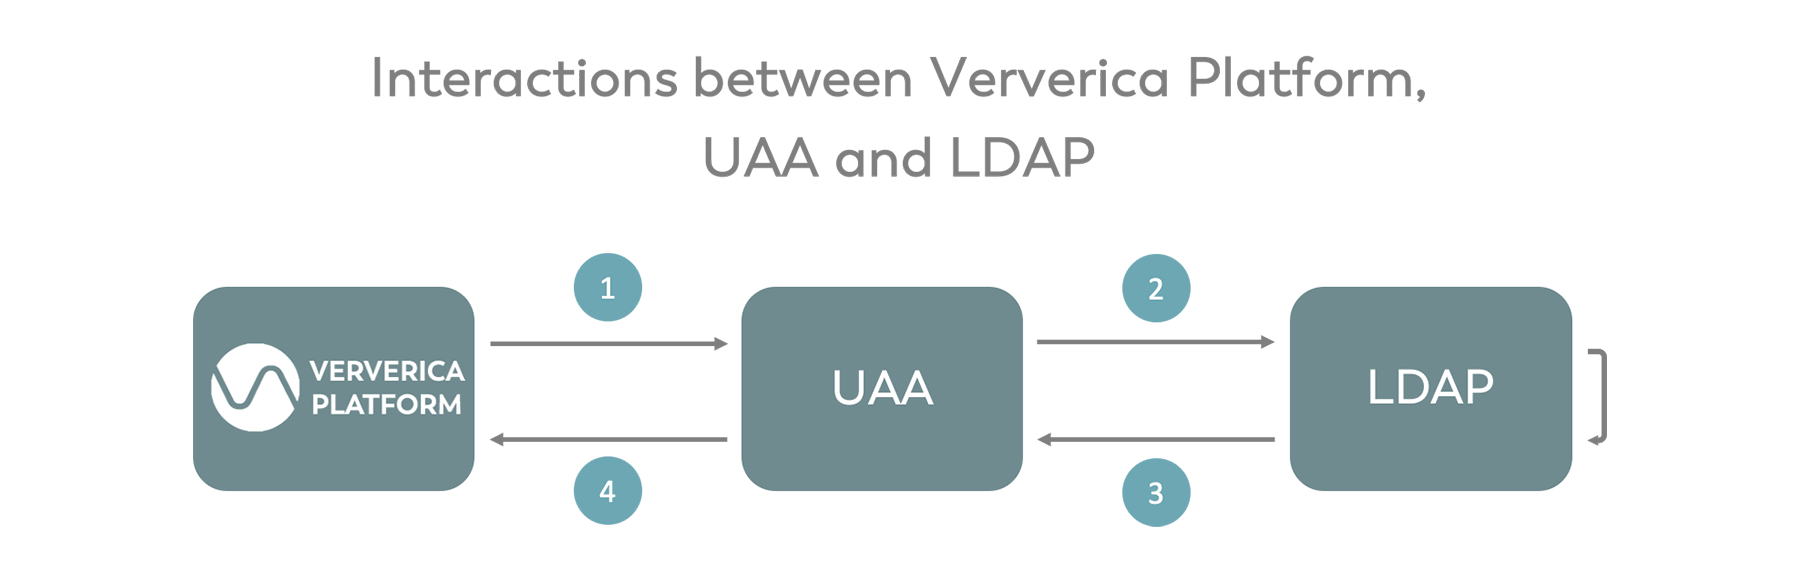 interactions between Ververica Platform, UAA and LDAP, Apache Flink, big data, Role based access control, RBAC